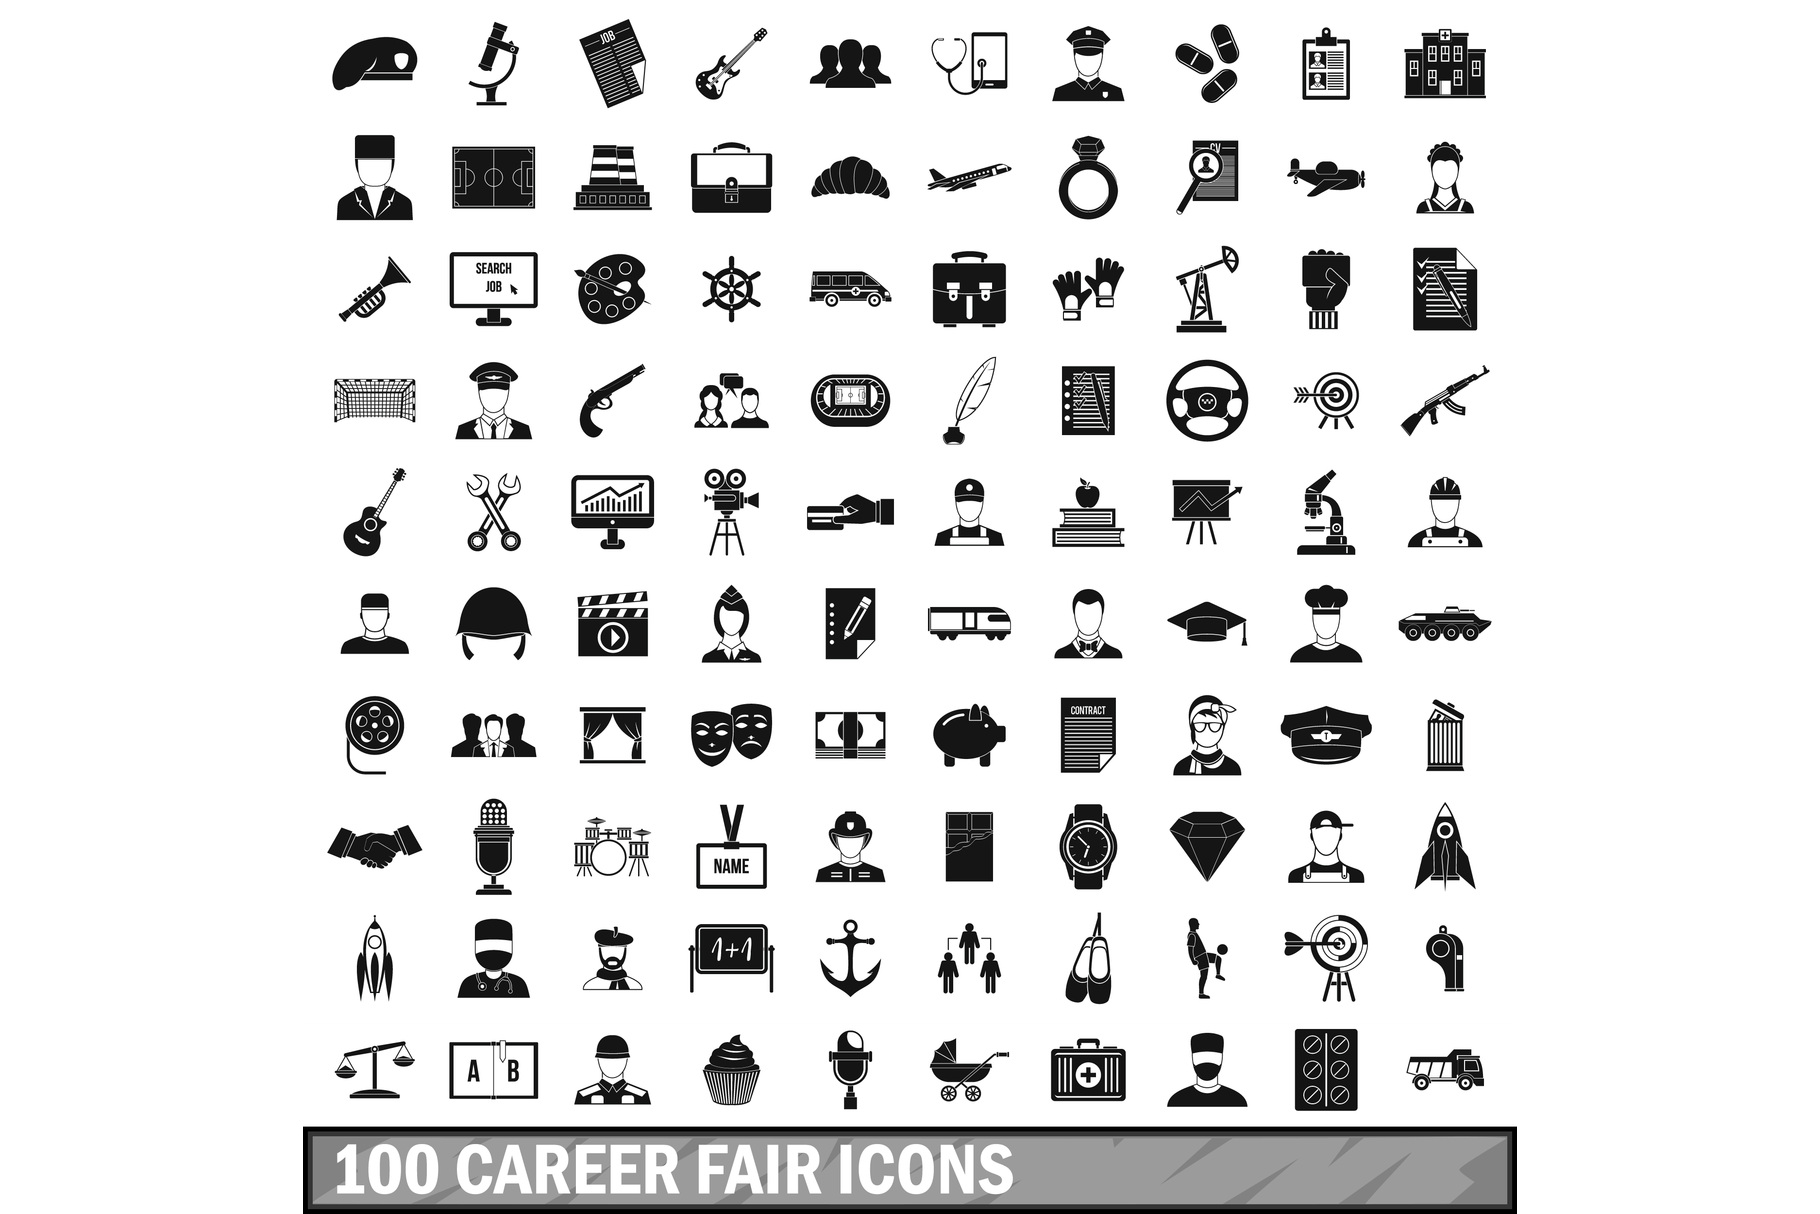 100 career fair icons set, simple style example image 1